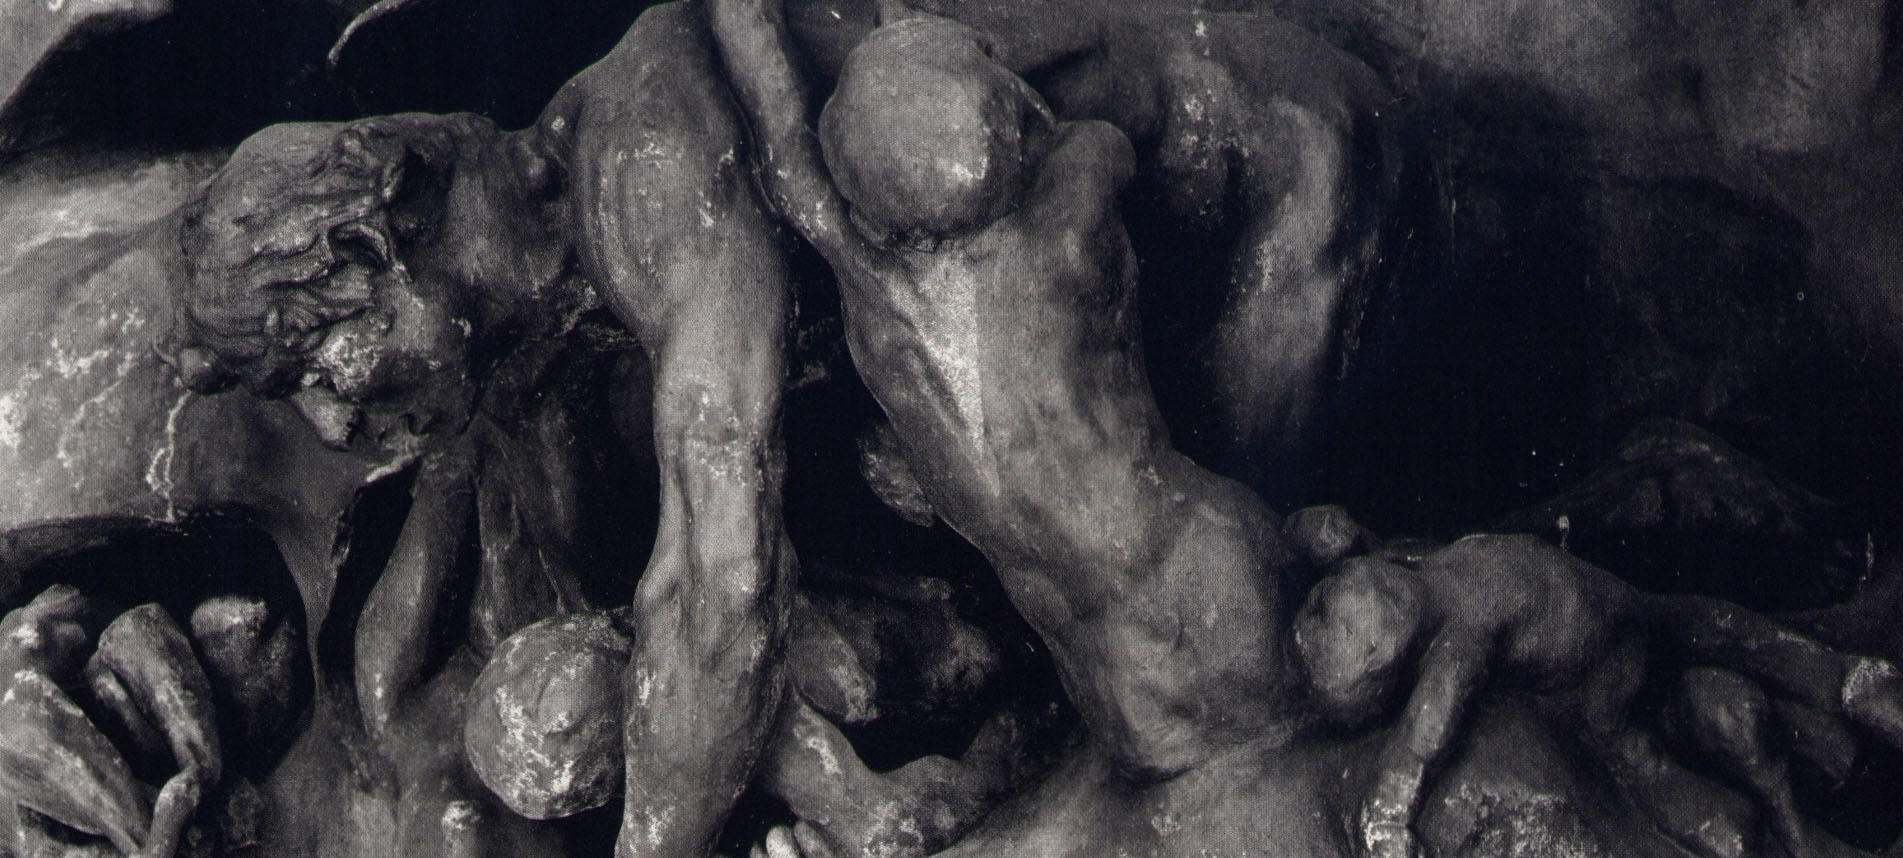 porte-enfer-sculpture-rodin-ugolin-photo-carol-marc-lavrillier